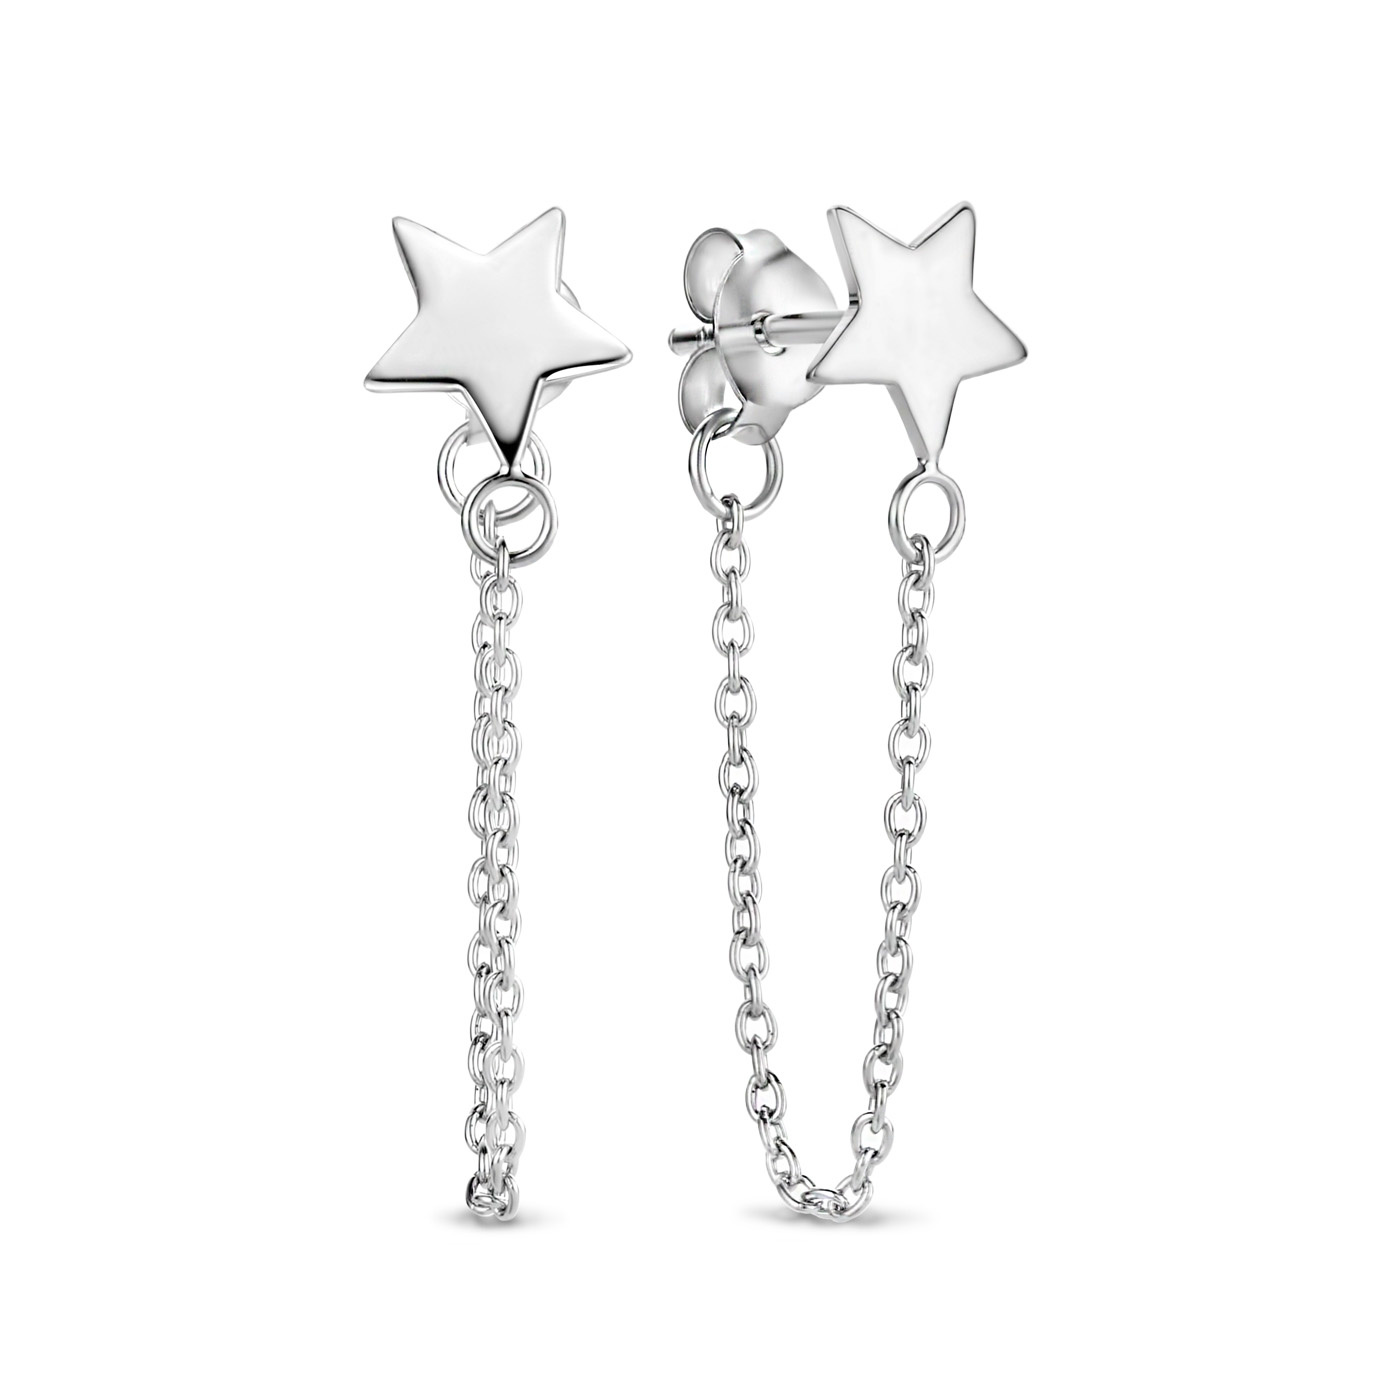 Selected Jewels Mila Cloé 925 sterling silver earparty